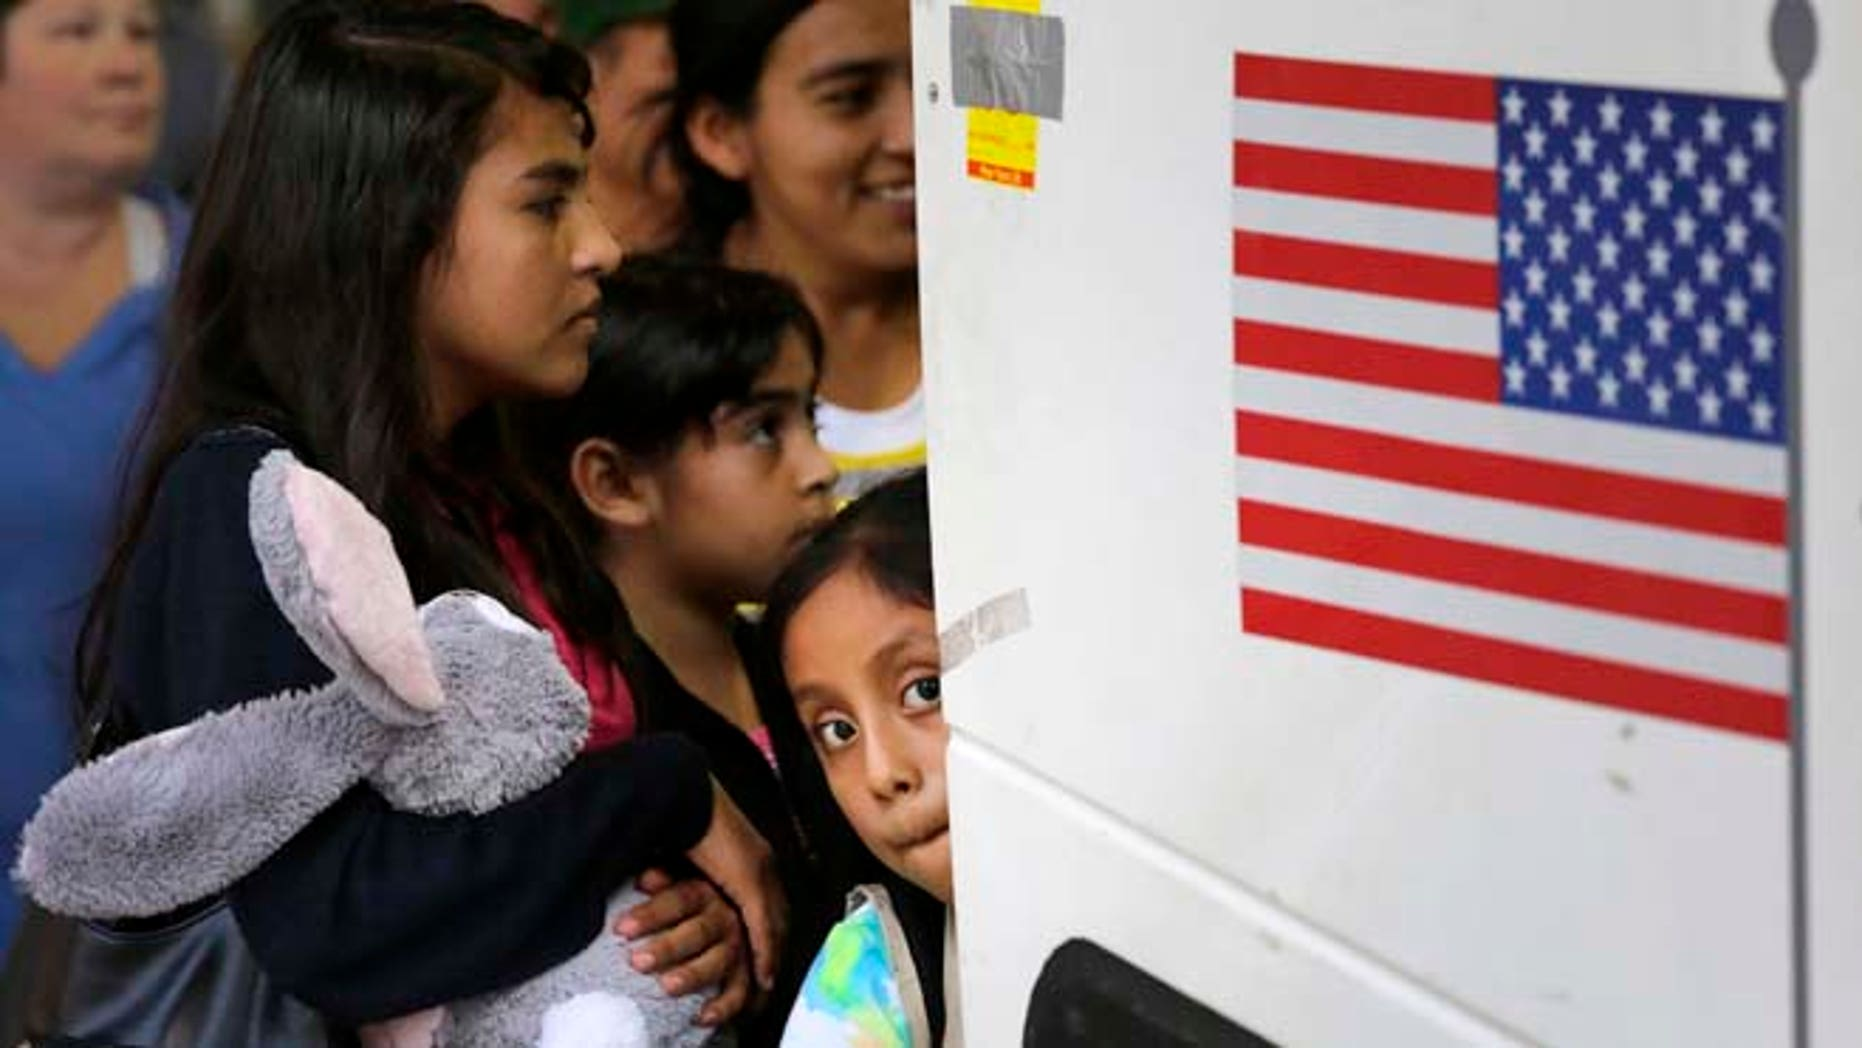 In this Tuesday, July 7, 2015, photo immigrants from El Salvador and Guatemala who entered the country illegally board a bus after they were released from a family detention center in San Antonio. Women and children are being released from immigrant detention centers faster on bond, with many mothers assigned ankle-monitoring bracelets in lieu of paying. (AP Photo/Eric Gay)